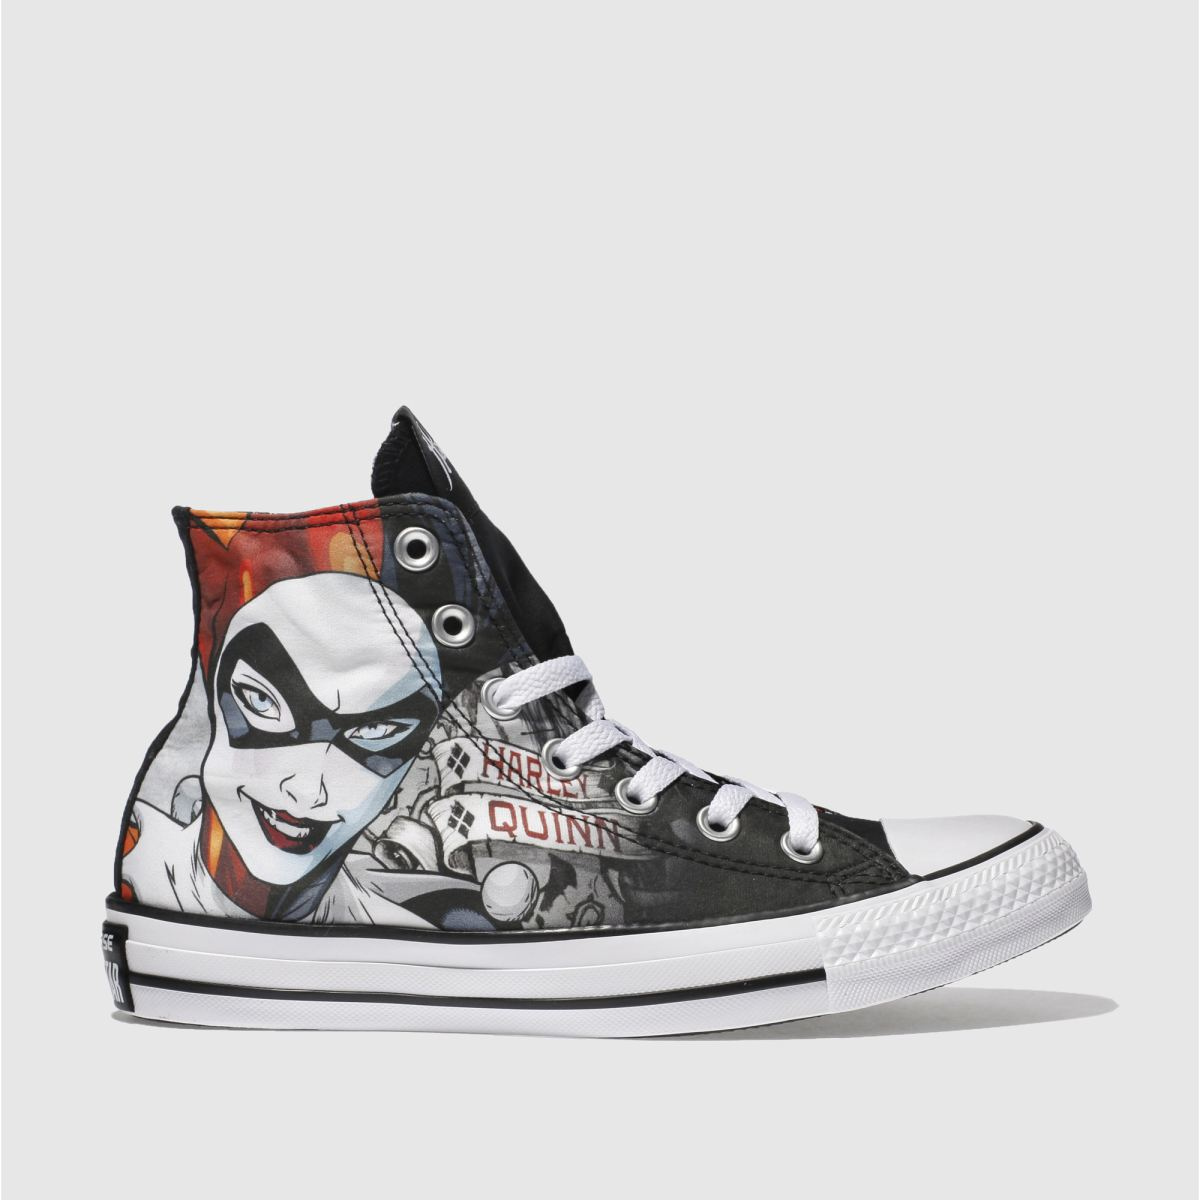 converse black & red all star hi harley quinn trainers